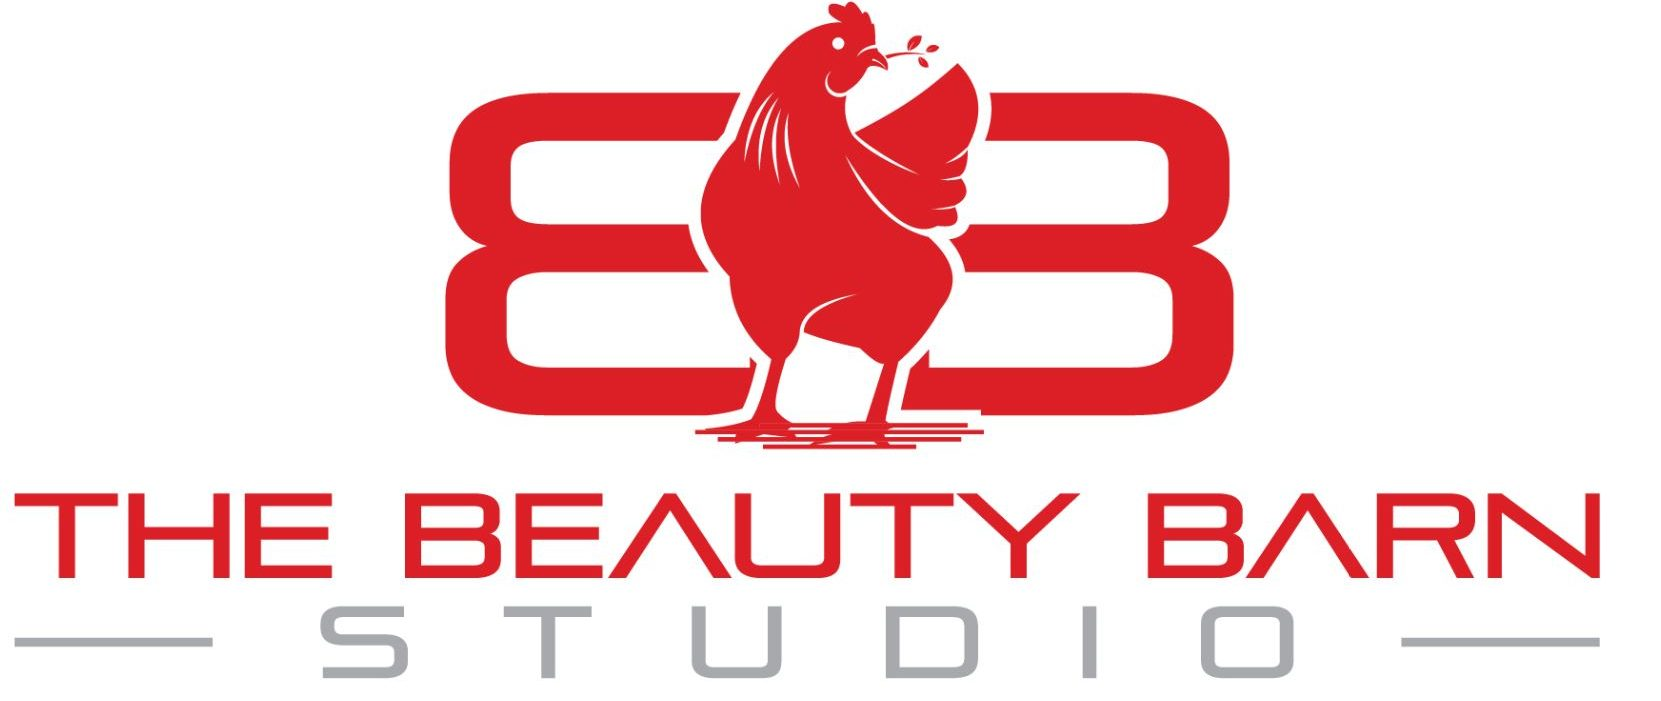 The Beauty Barn Studio